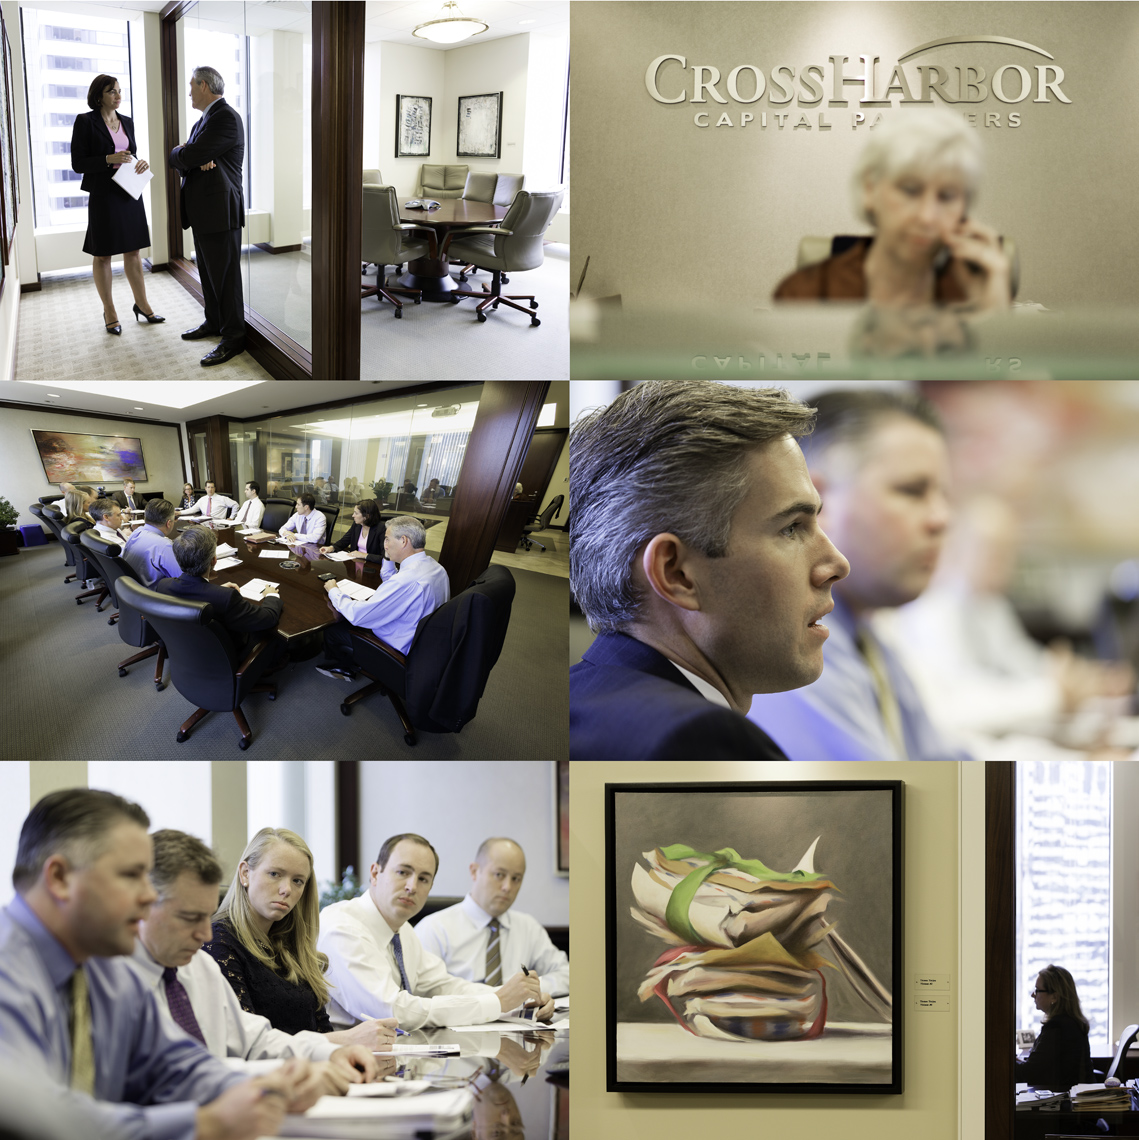 CROSSHARBOR CAPITAL • JASON GROW PHOTOGRAPHY